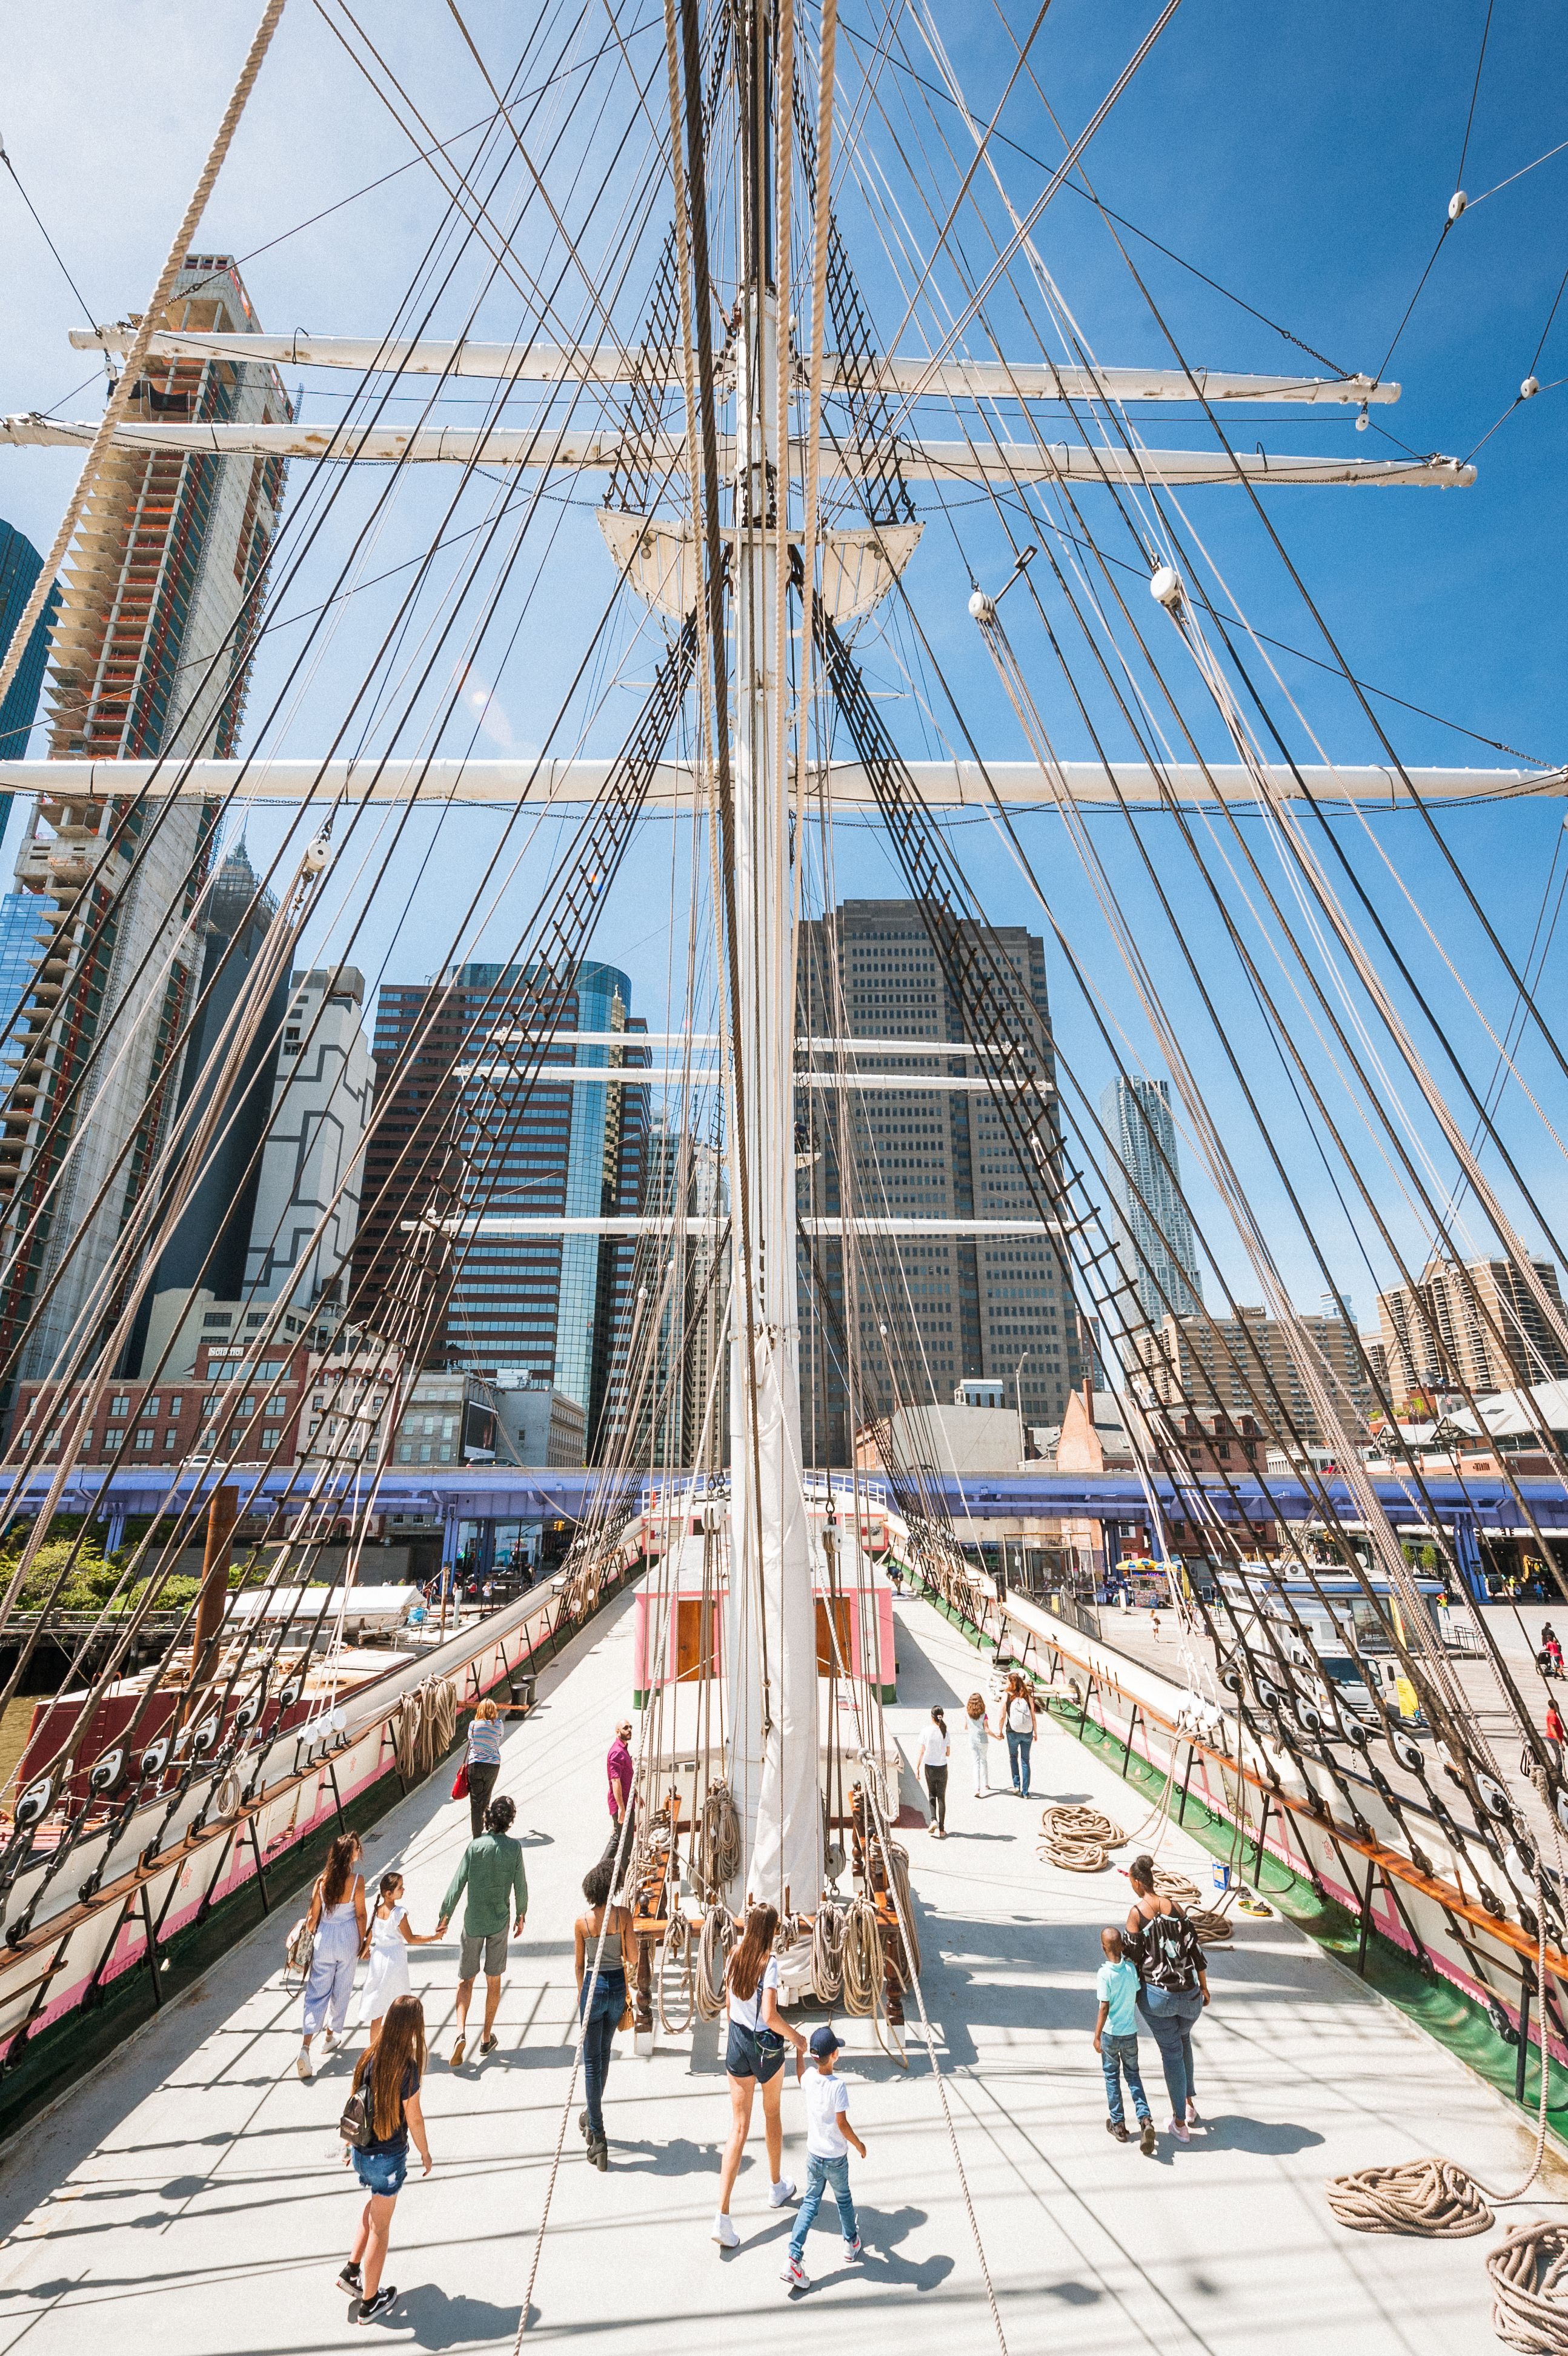 IN PERSON FREE Entry to 1885 Tall Ship Wavertree at South Street Seaport Museum